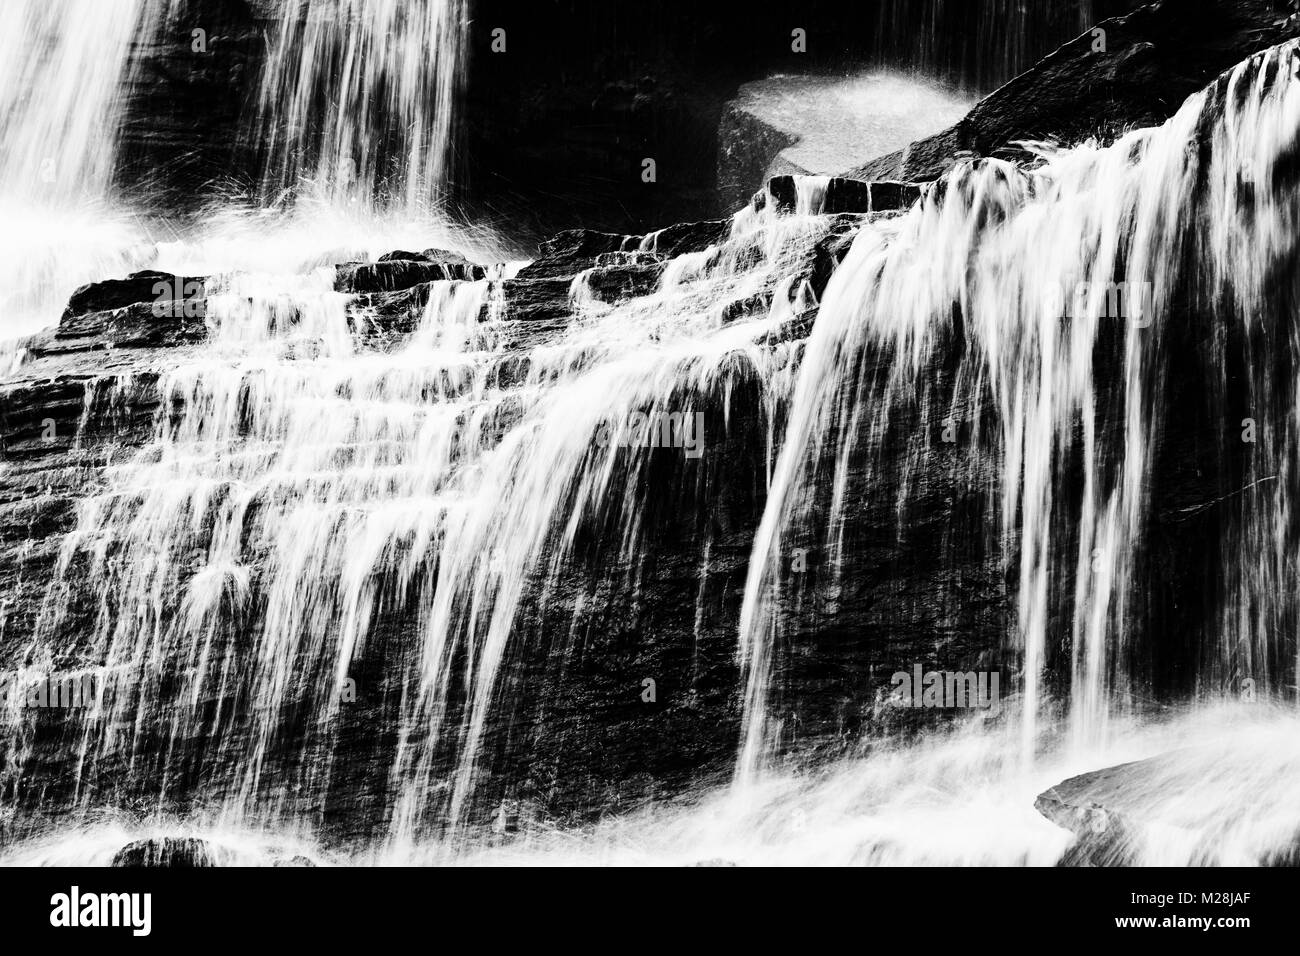 Kintampo Waterfalls in Ghana - Stock Image